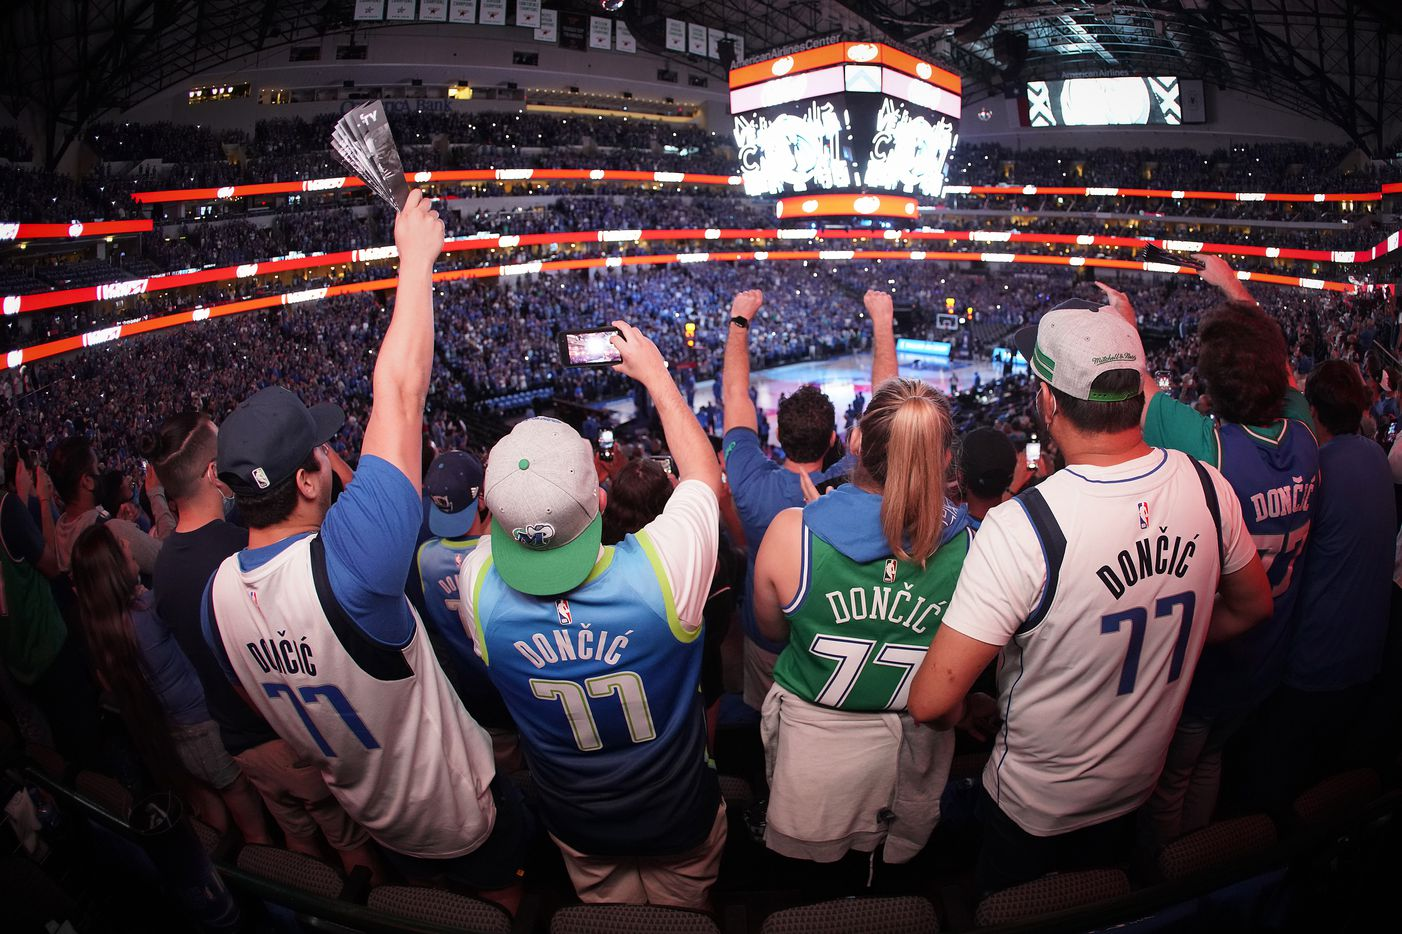 Dallas Mavericks fans, all wearing guard Luka Doncic #77 jerseys, cheer as their team takes the court before an NBA playoff basketball game against the LA Clippers at American Airlines Center on Friday, May 28, 2021, in Dallas.  (Smiley N. Pool/The Dallas Morning News)